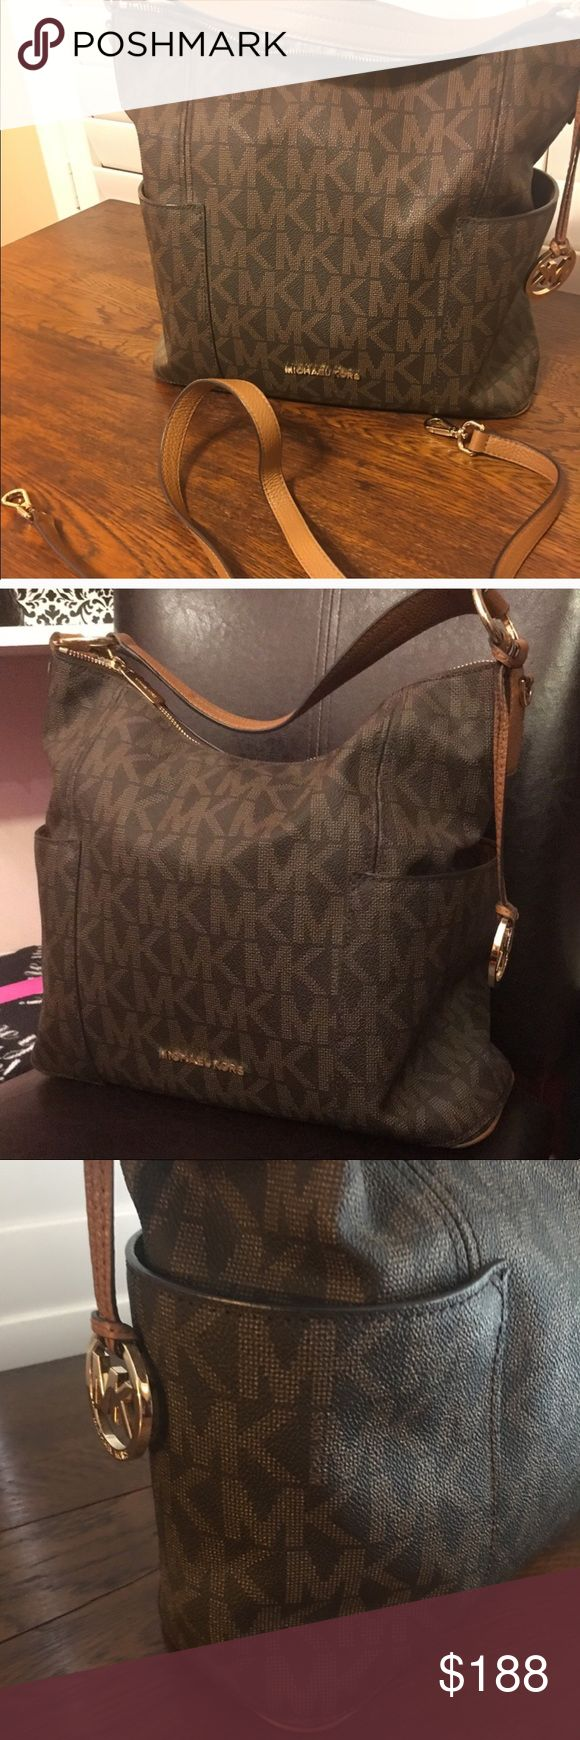 Michael Kors handbag (Today only price). Authentic and in Excellent Condition.... this MK is a roomy bag with lots of pocket space.  The inside has 2 roomy sides and a very roomy zipper compartment dividing the two sides. Plus the many smaller pockets for 💄🖊🍬. The outside has 2 nice pockets for your 📱. This is a signature bag which has his name placed on certain areas of the outside.  📌Can be worn: - Crossbody  - Shoulder  - Tote You won't be disappointed 👌🏽  ✔️No holds ✔️No trades…